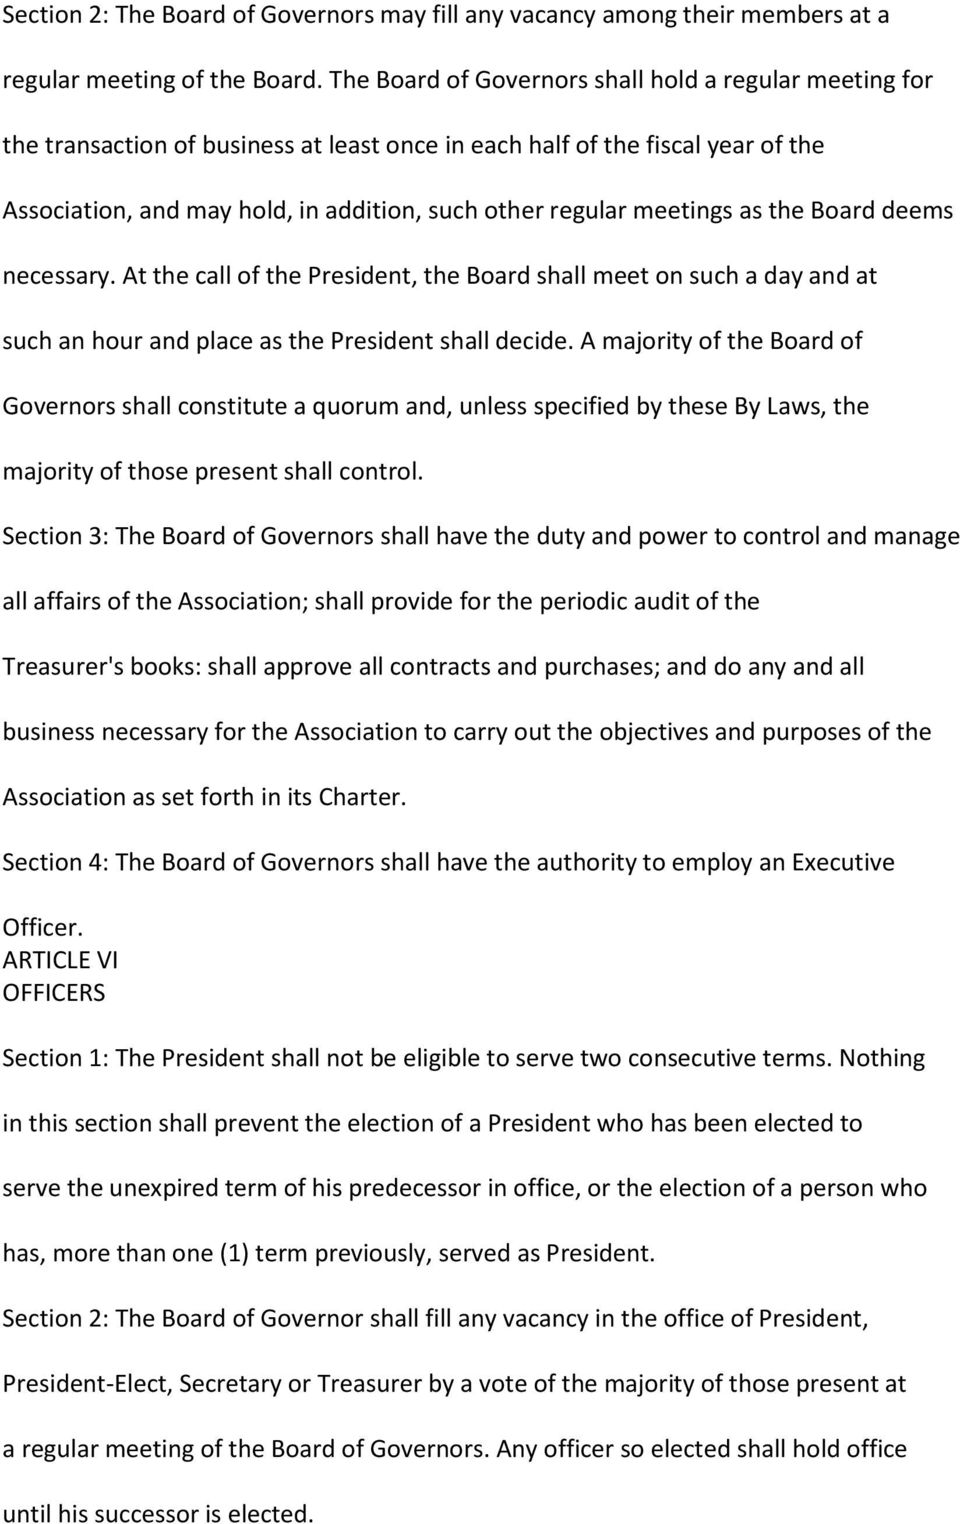 meetings as the Board deems necessary. At the call of the President, the Board shall meet on such a day and at such an hour and place as the President shall decide.